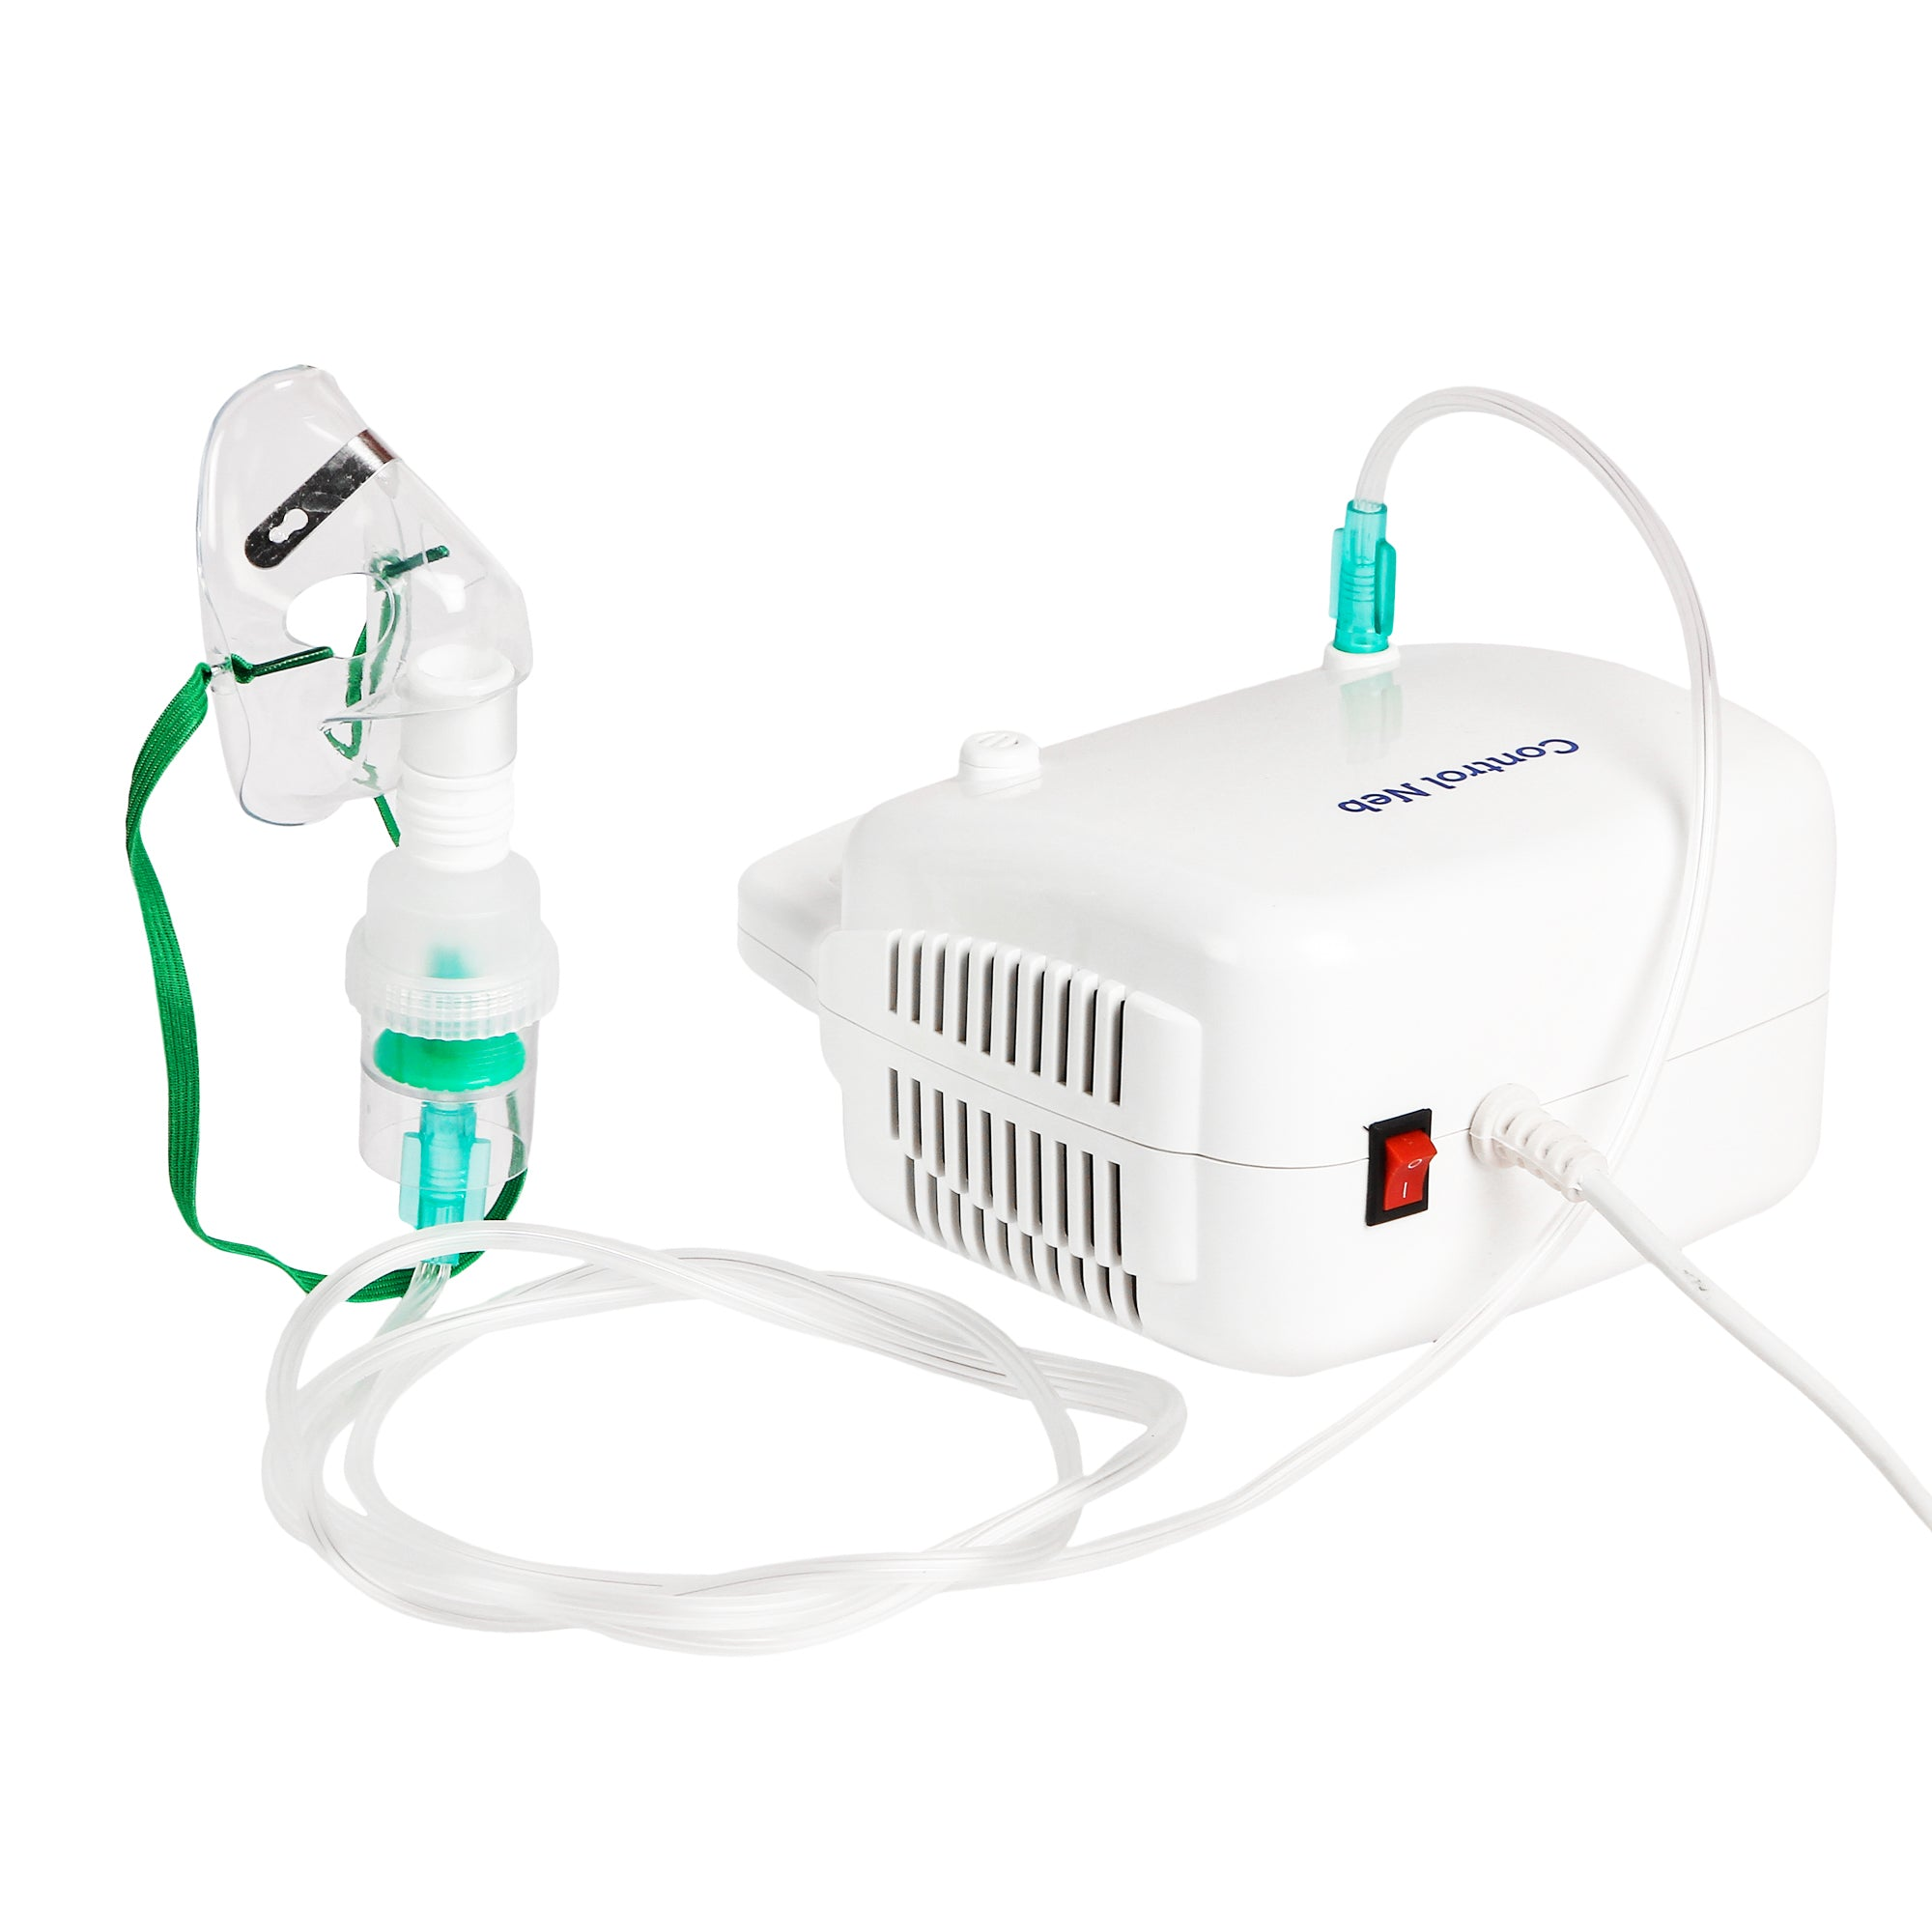 Control D Nebulizer (with FREE Healthy Socks)